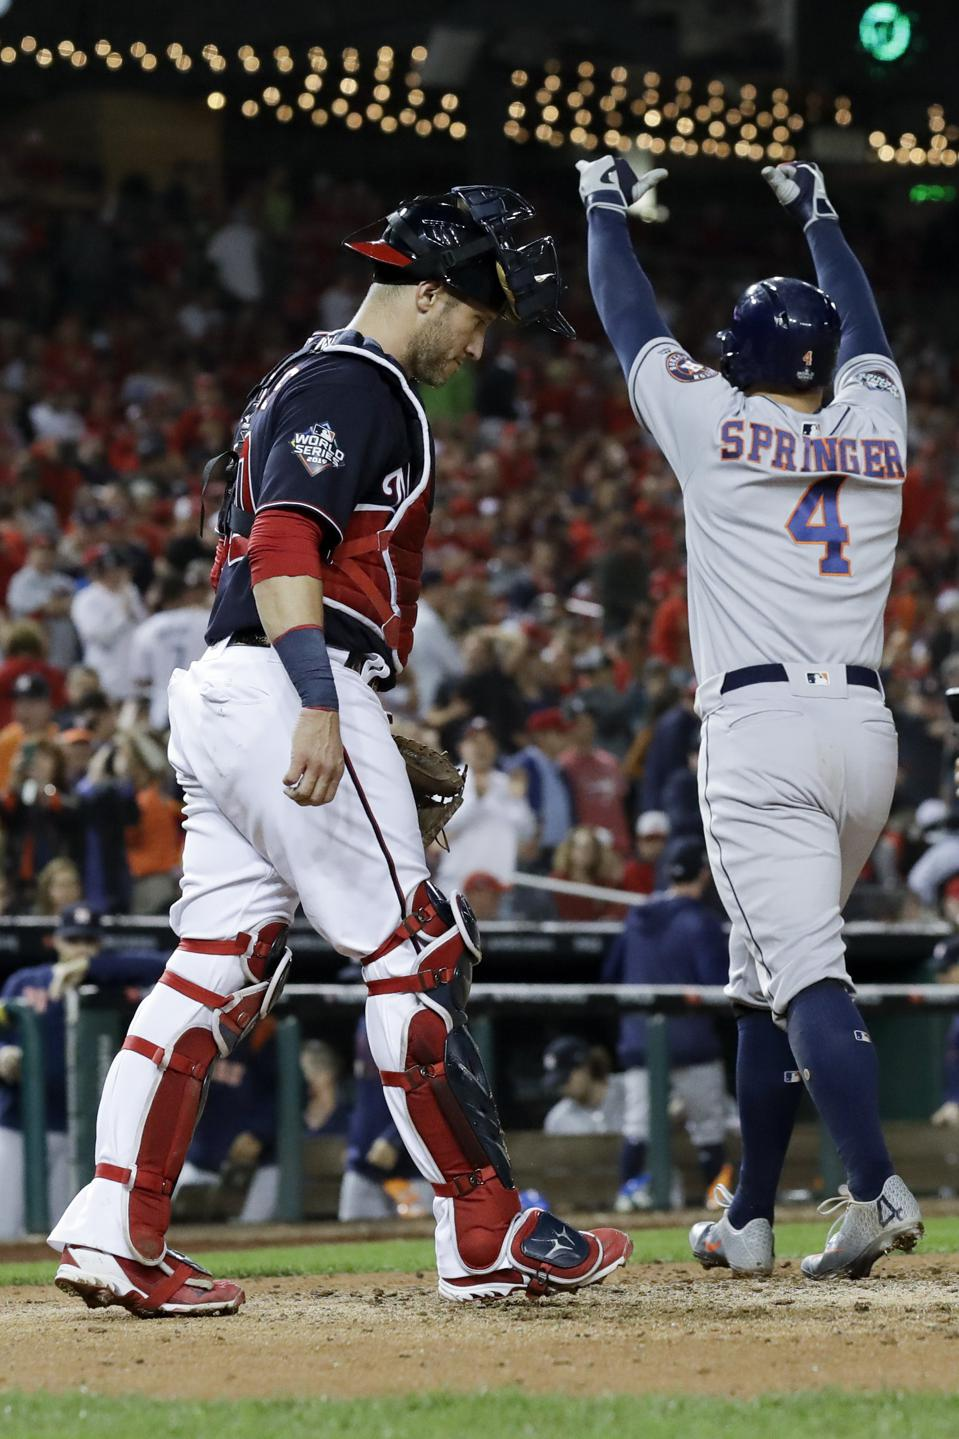 Houston Astros' George Springer celebrates past Washington Nationals catcher Yan Gomes after a two-run home run.